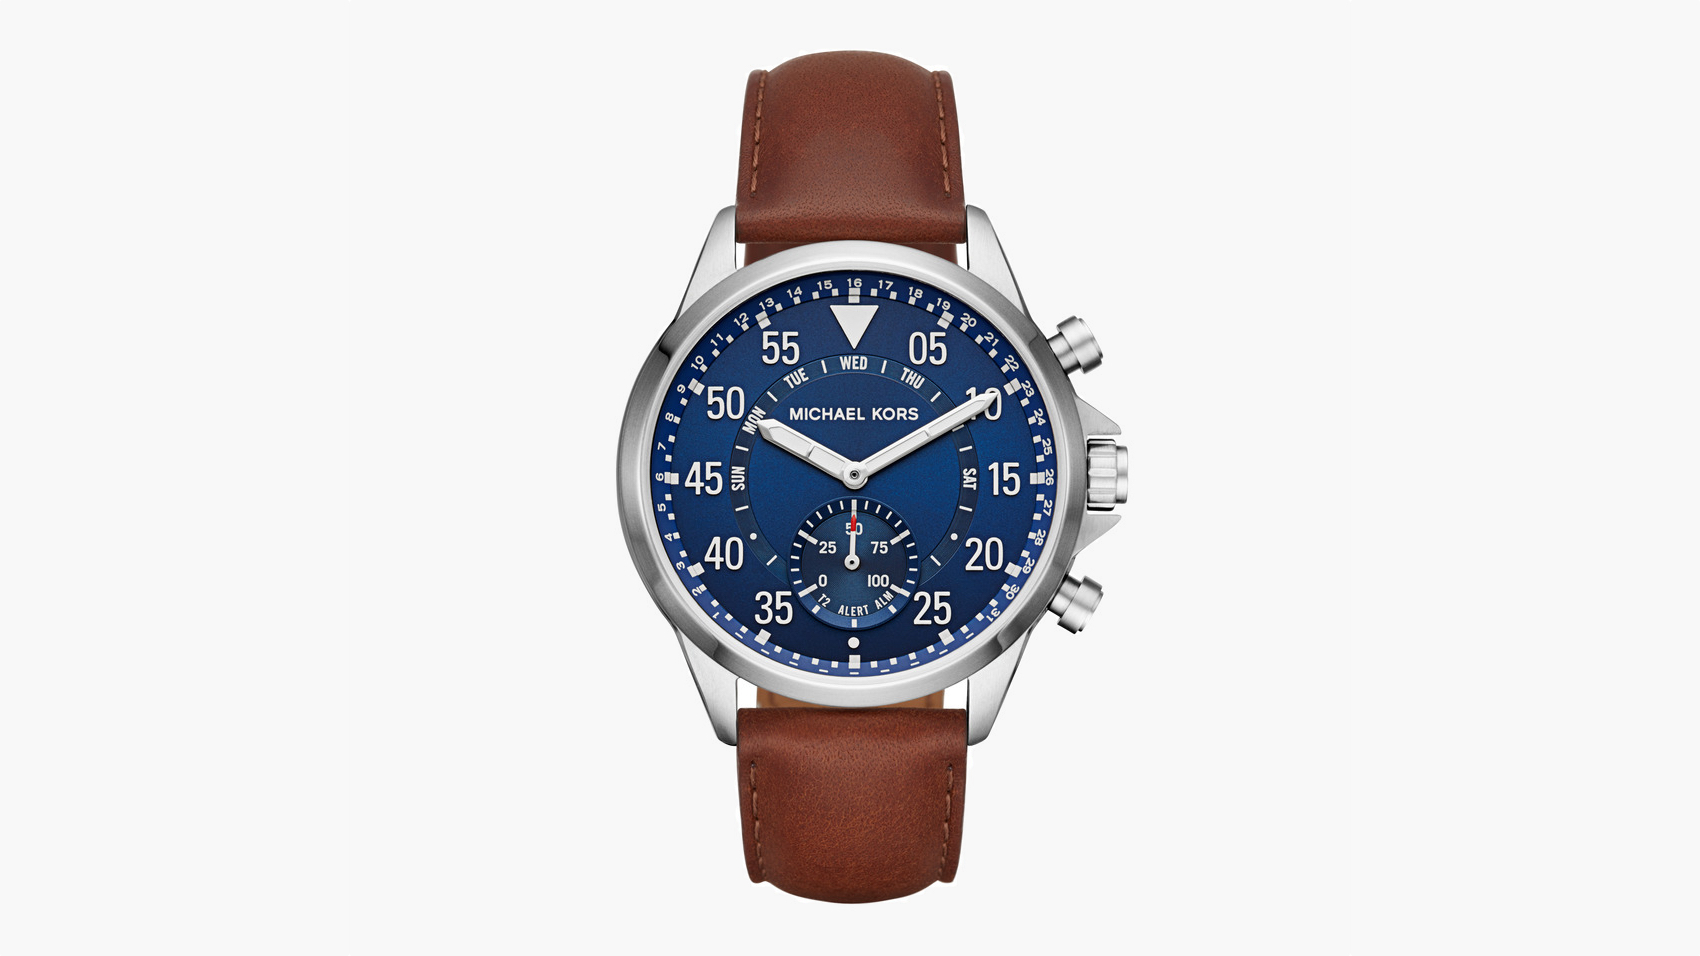 Michael Kors men's watches getting smarts